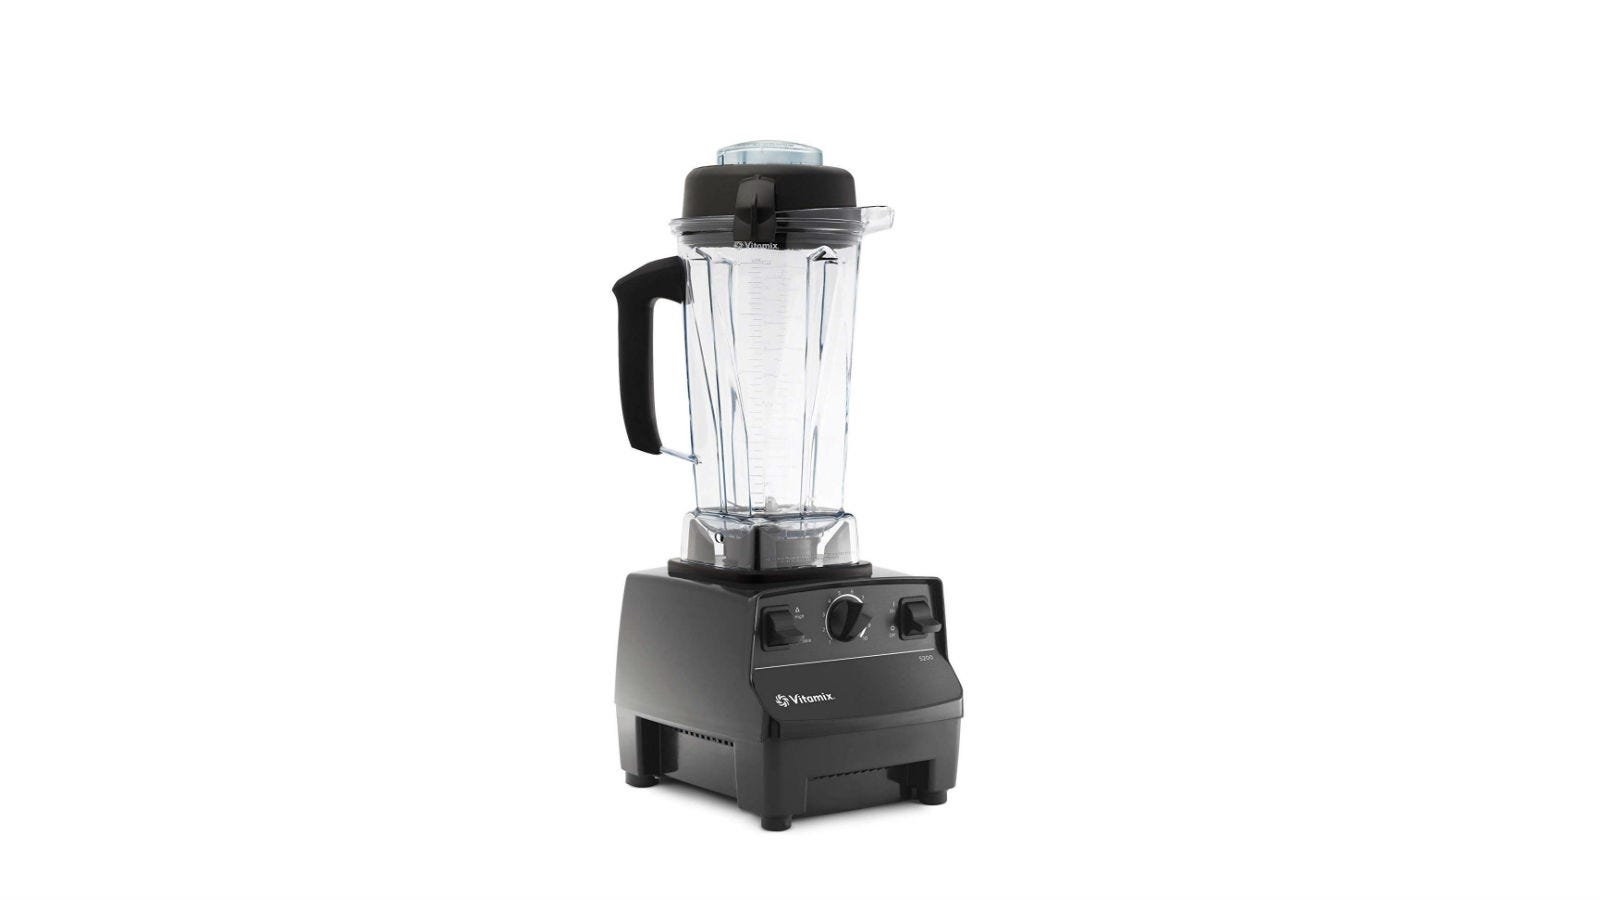 The Vitamix 5200 Professional-Grade Blender.